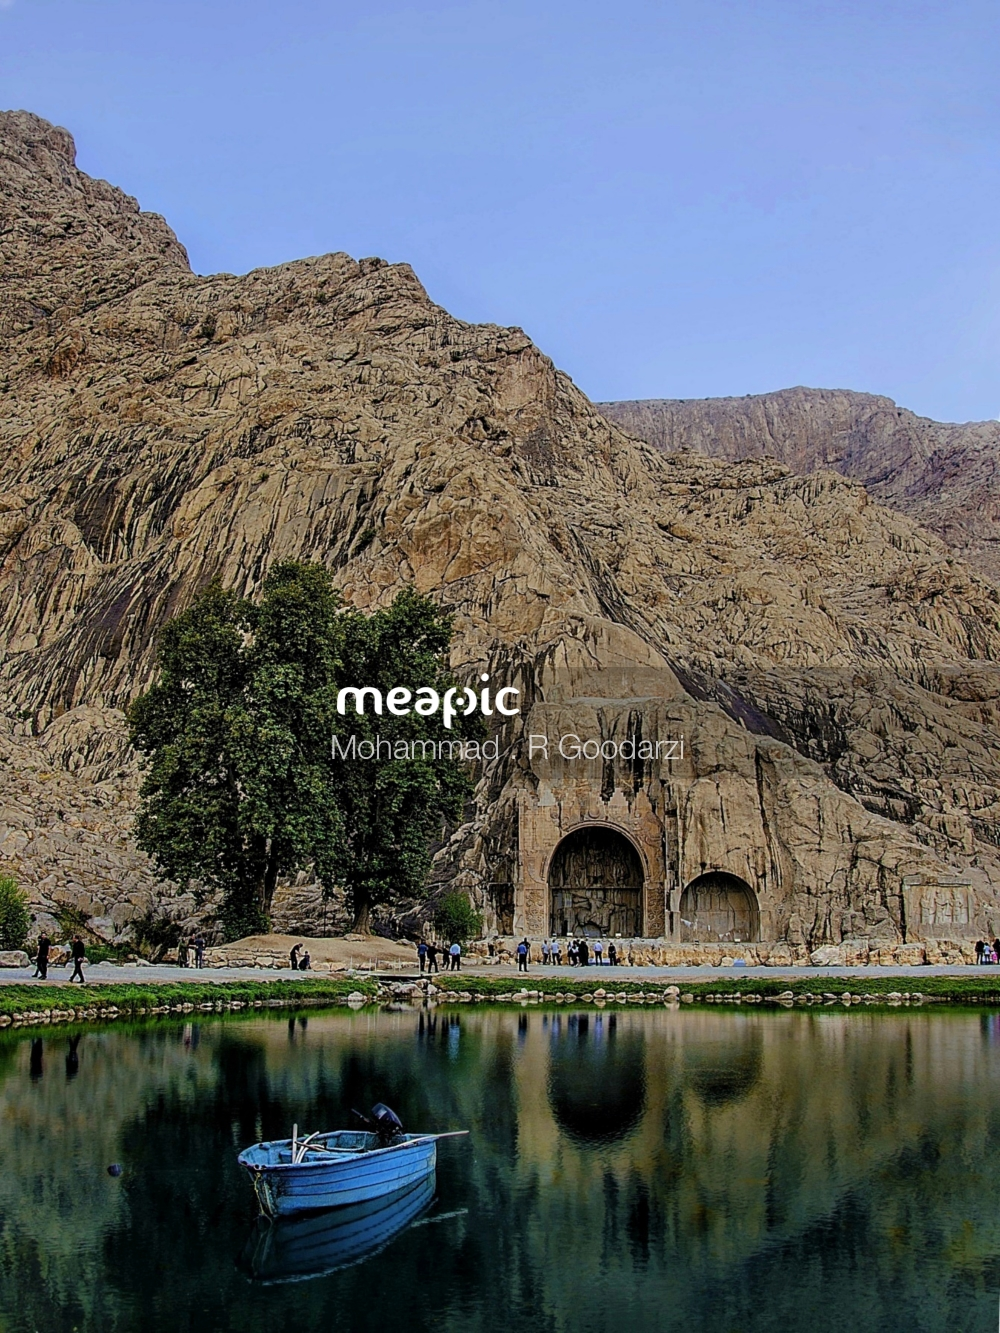 Bridge Over A Body Of Water With A Mountain In The Background Stock Photo · Meapic